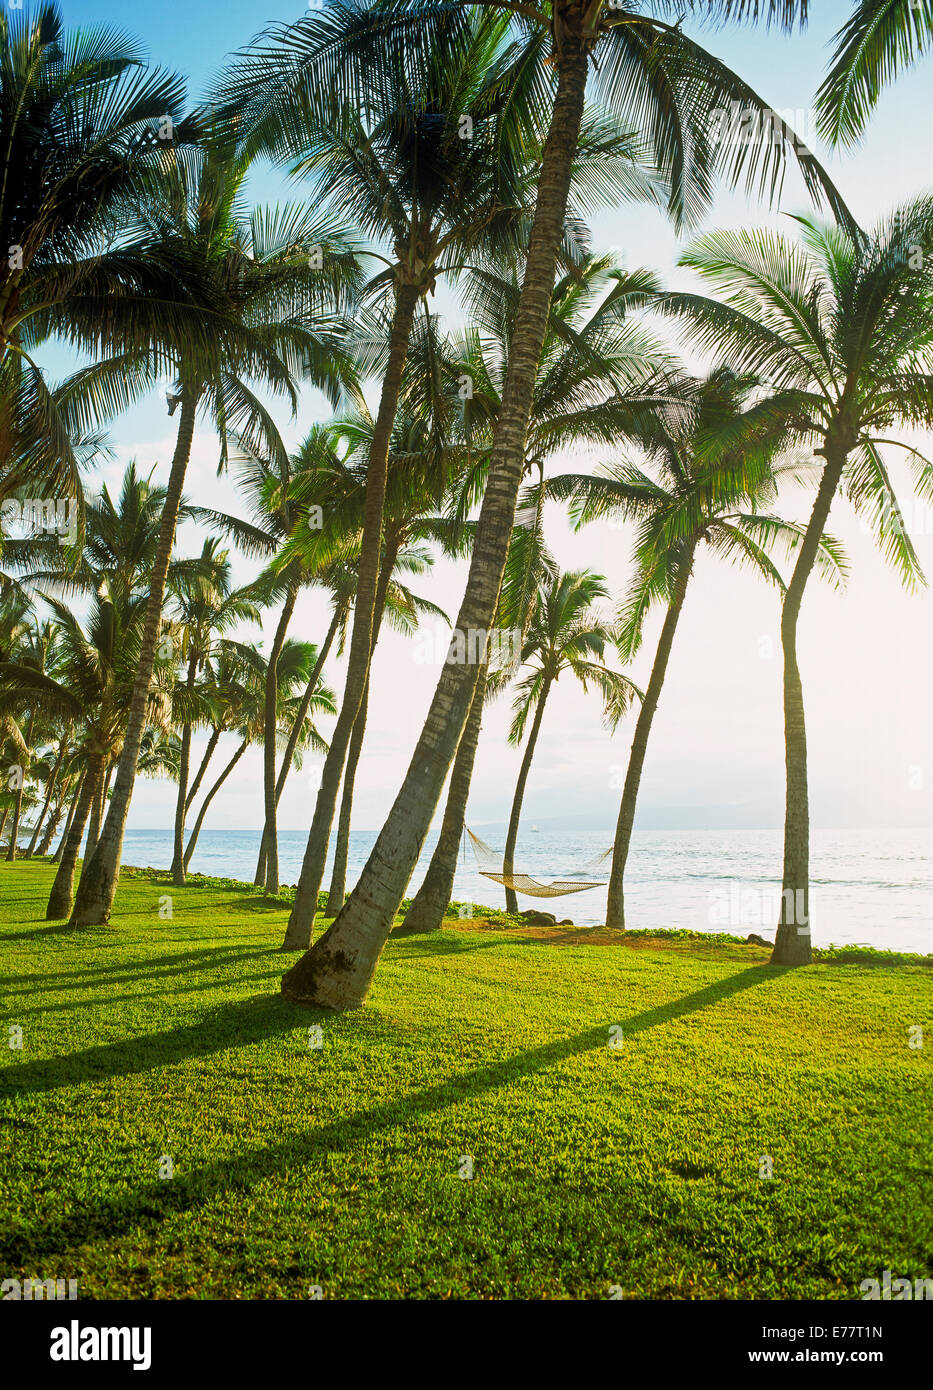 Hammocks hanging from palm trees over green grass on Maui along Pacific Ocean in bright sunlight - Stock Image